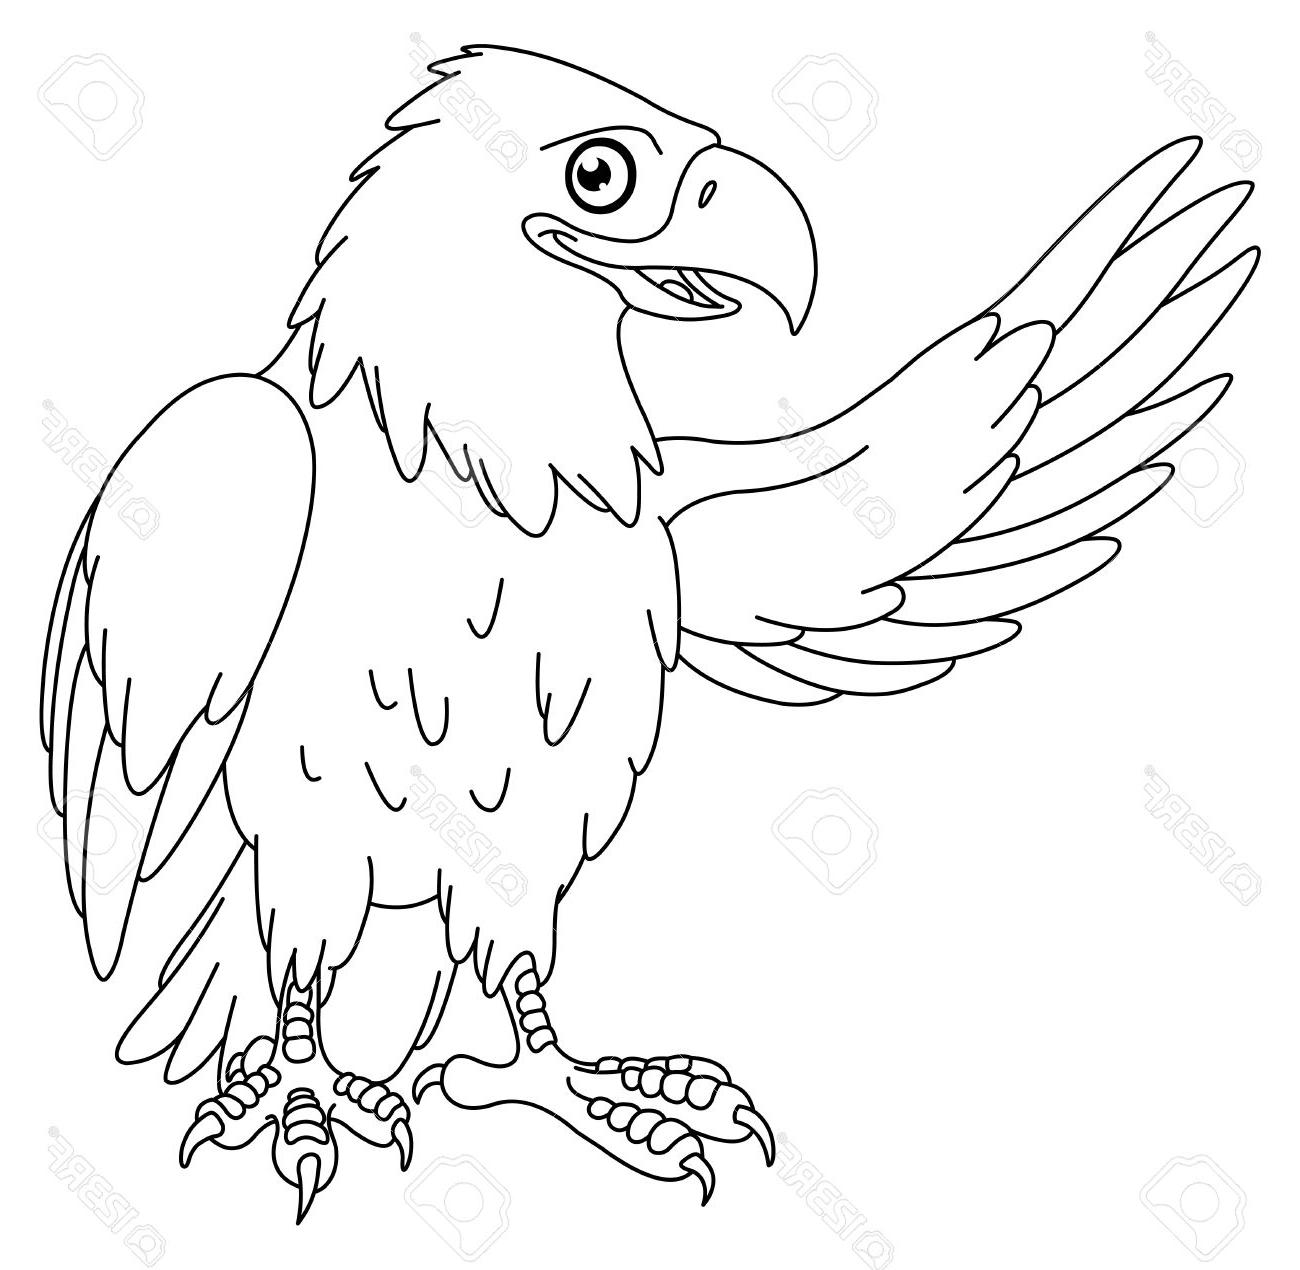 bald eagle drawing at getdrawings com